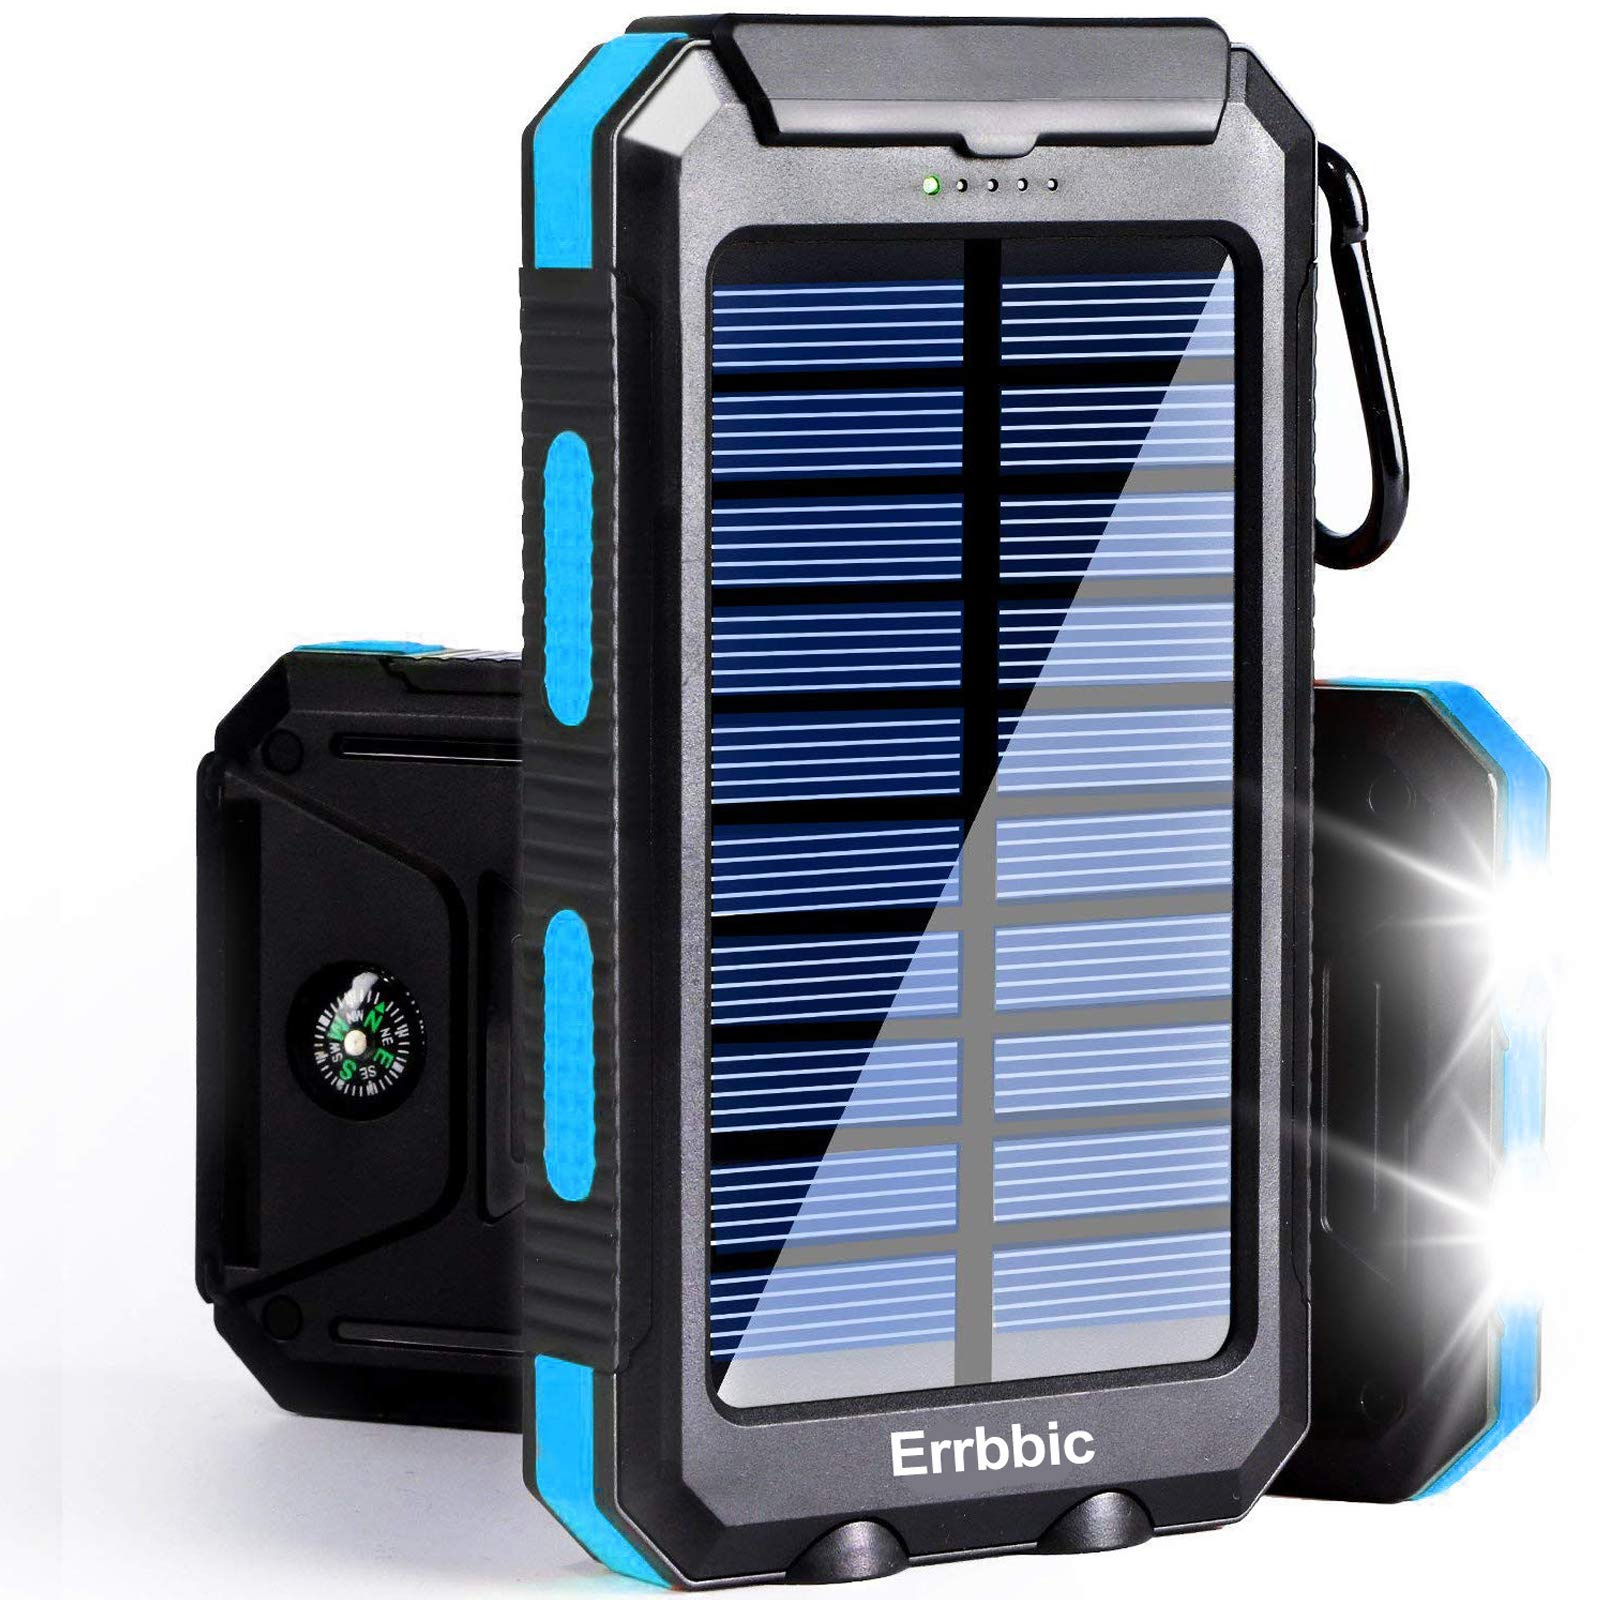 Solar Power Bank Portable Charger 20000mah Waterproof Battery Backup Charger Solar Panel Charger with Dual LED Flashlights and Compass for iPhone Android CellPhones